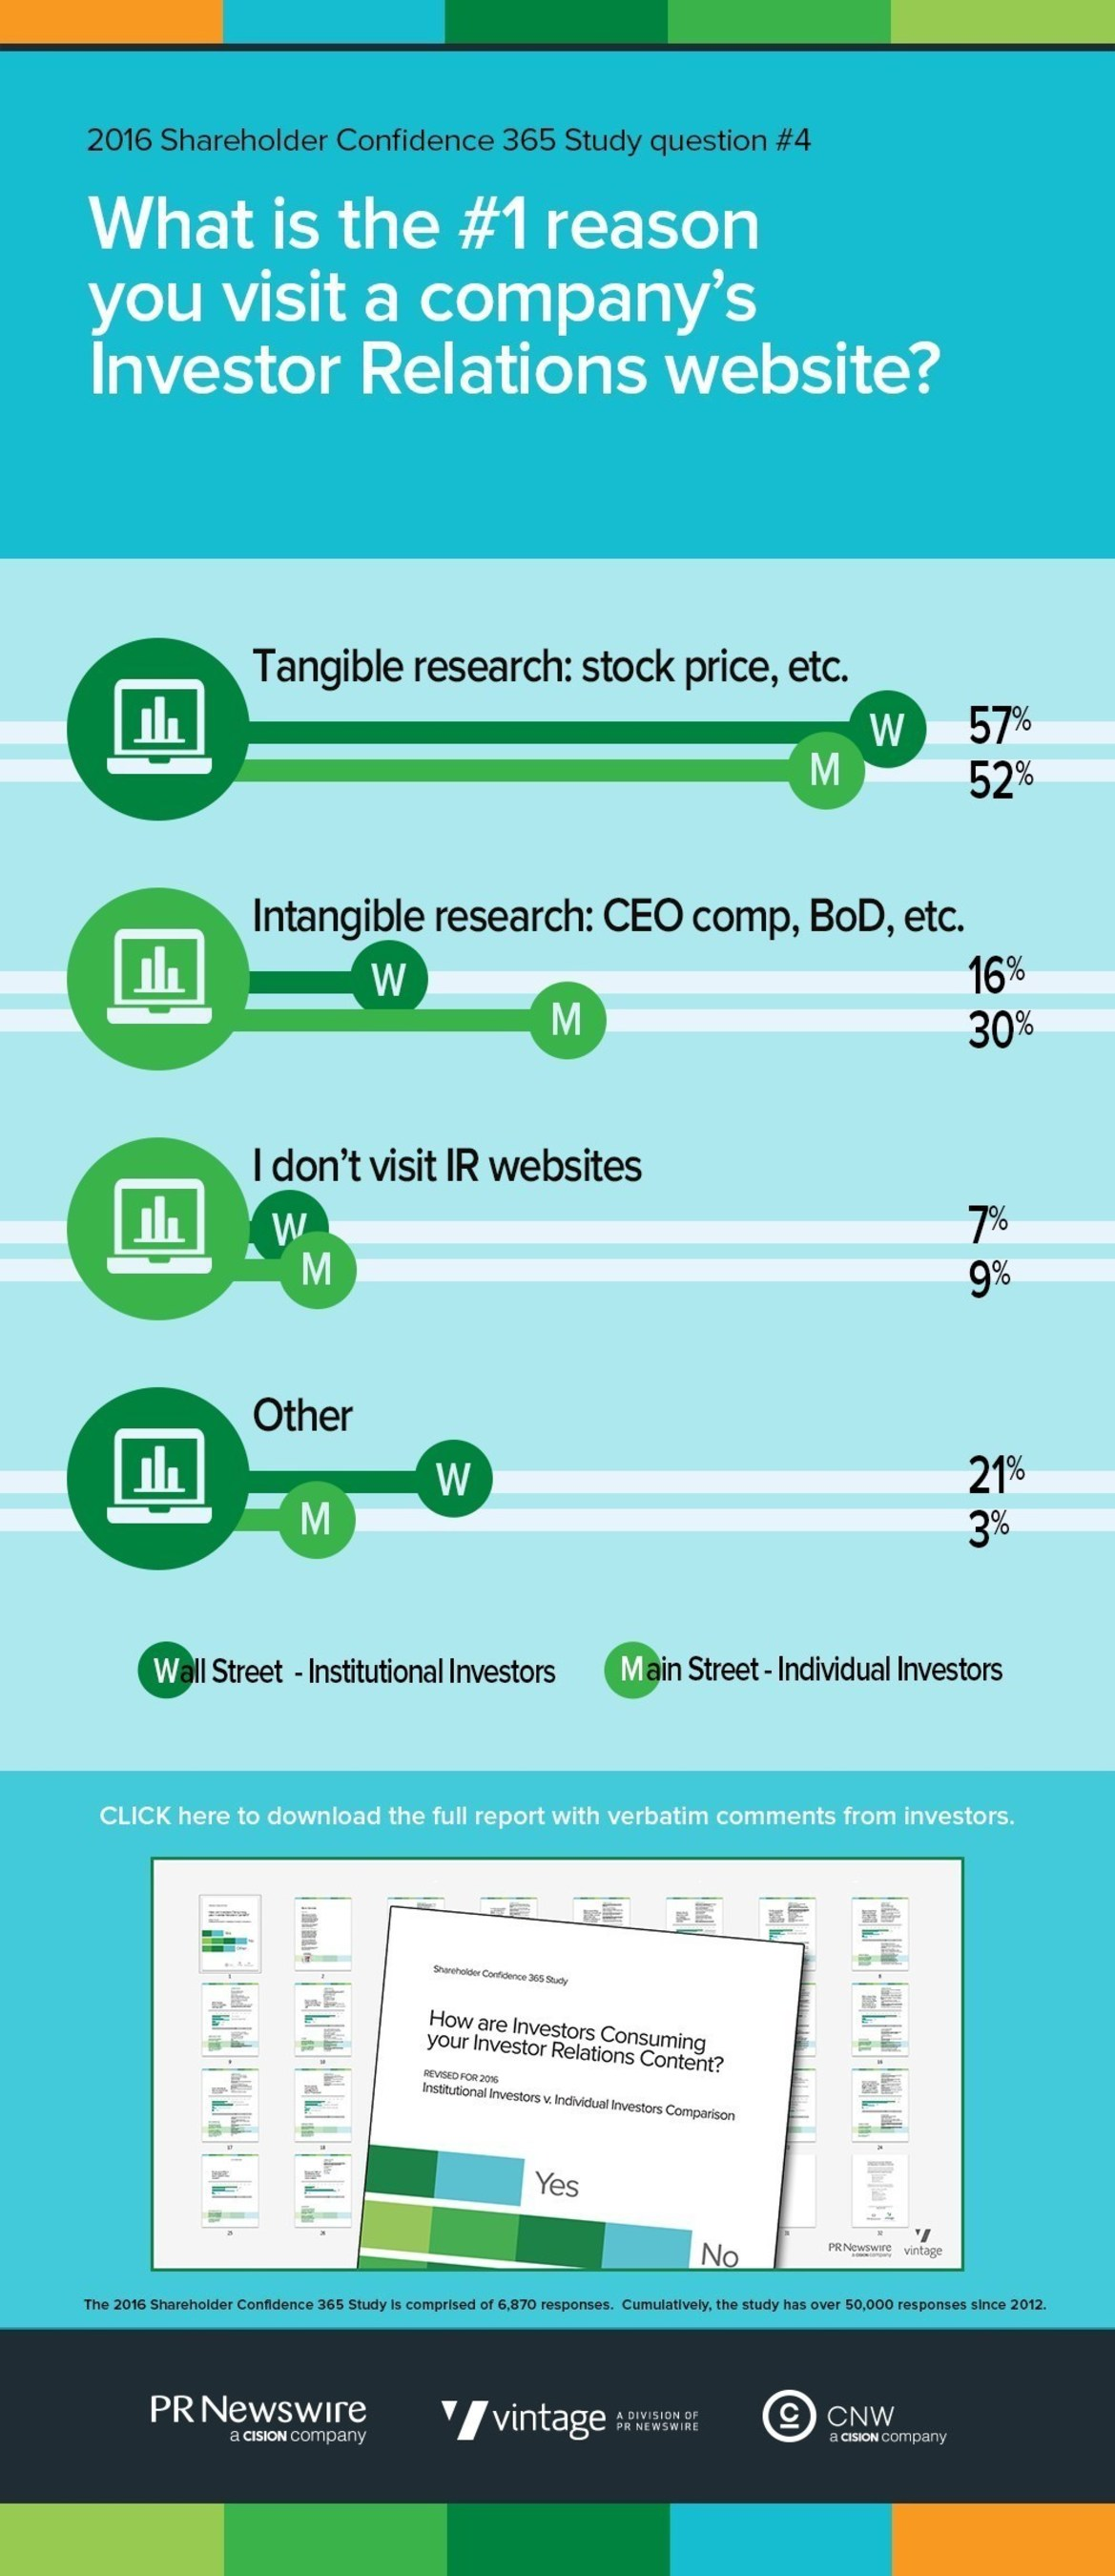 REPORT: Tangible research drives institutional investors to IR websites 3X over intangible